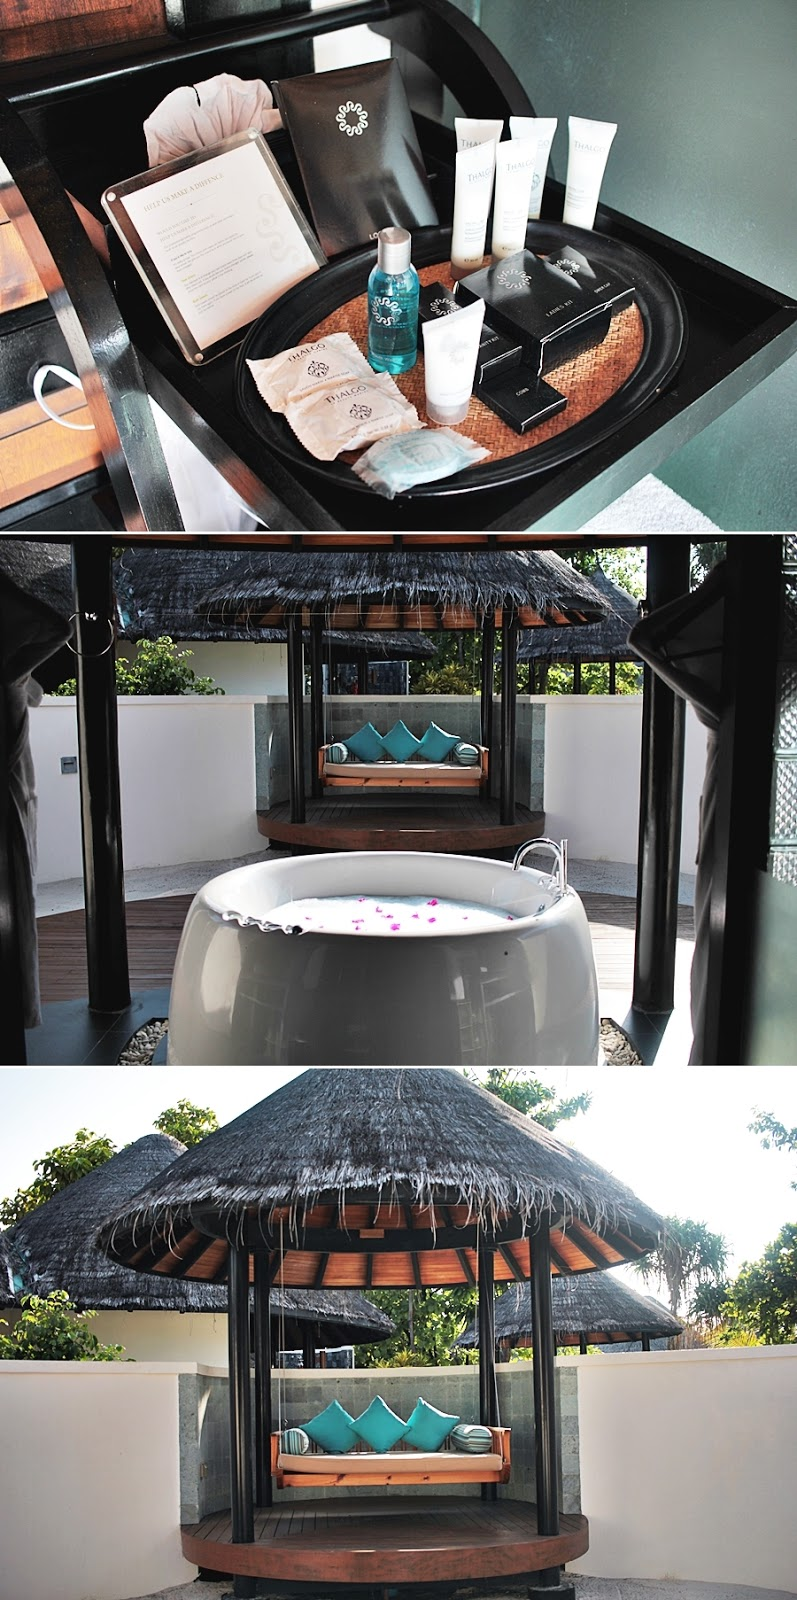 jacuzzi travel madives luxury resort